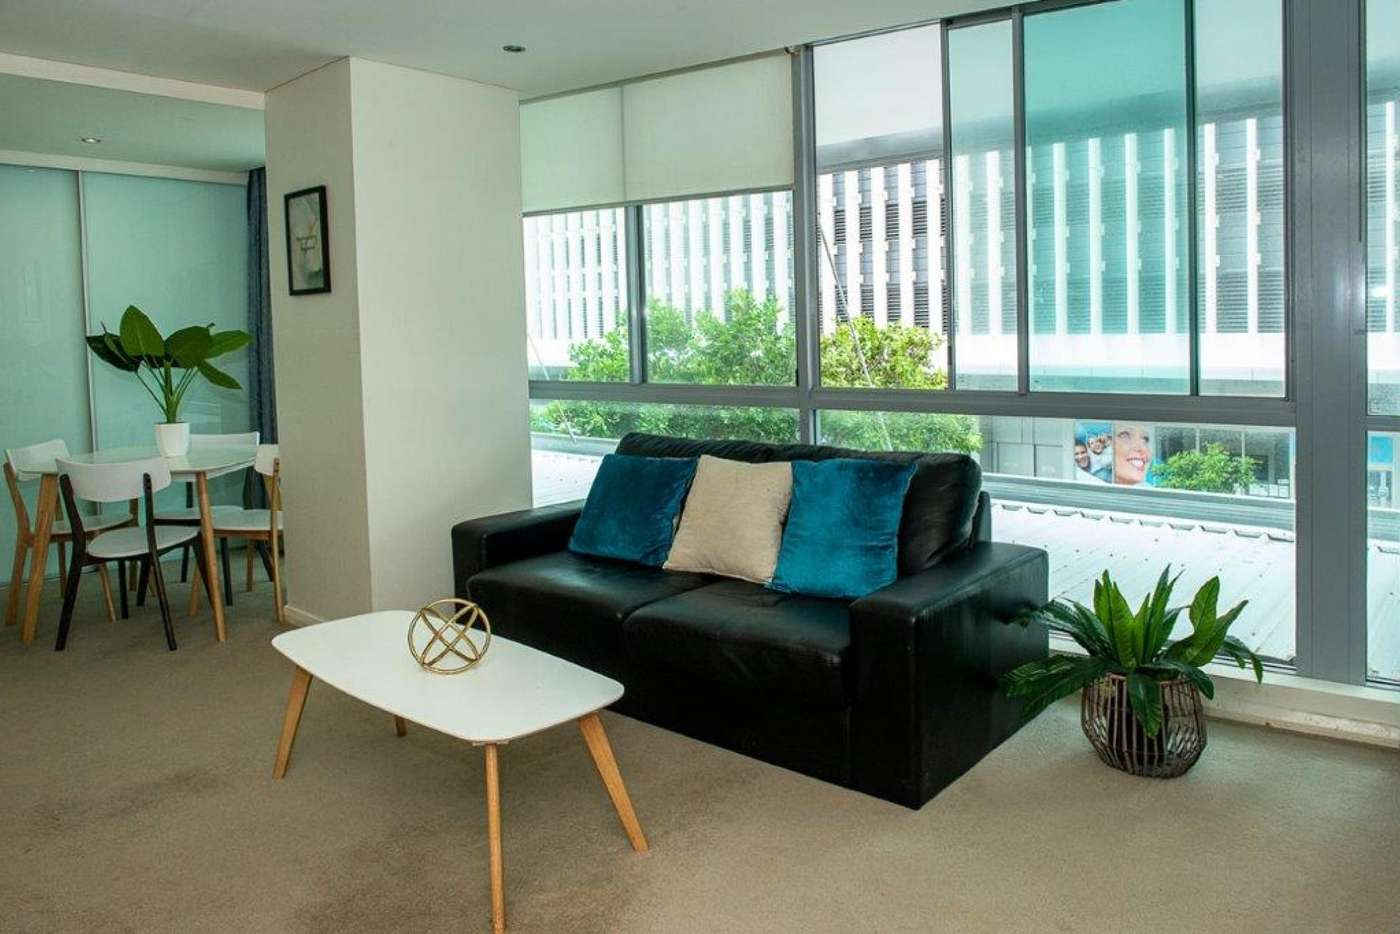 Main view of Homely apartment listing, Unit 519B/1 Como Crescent, Southport QLD 4215